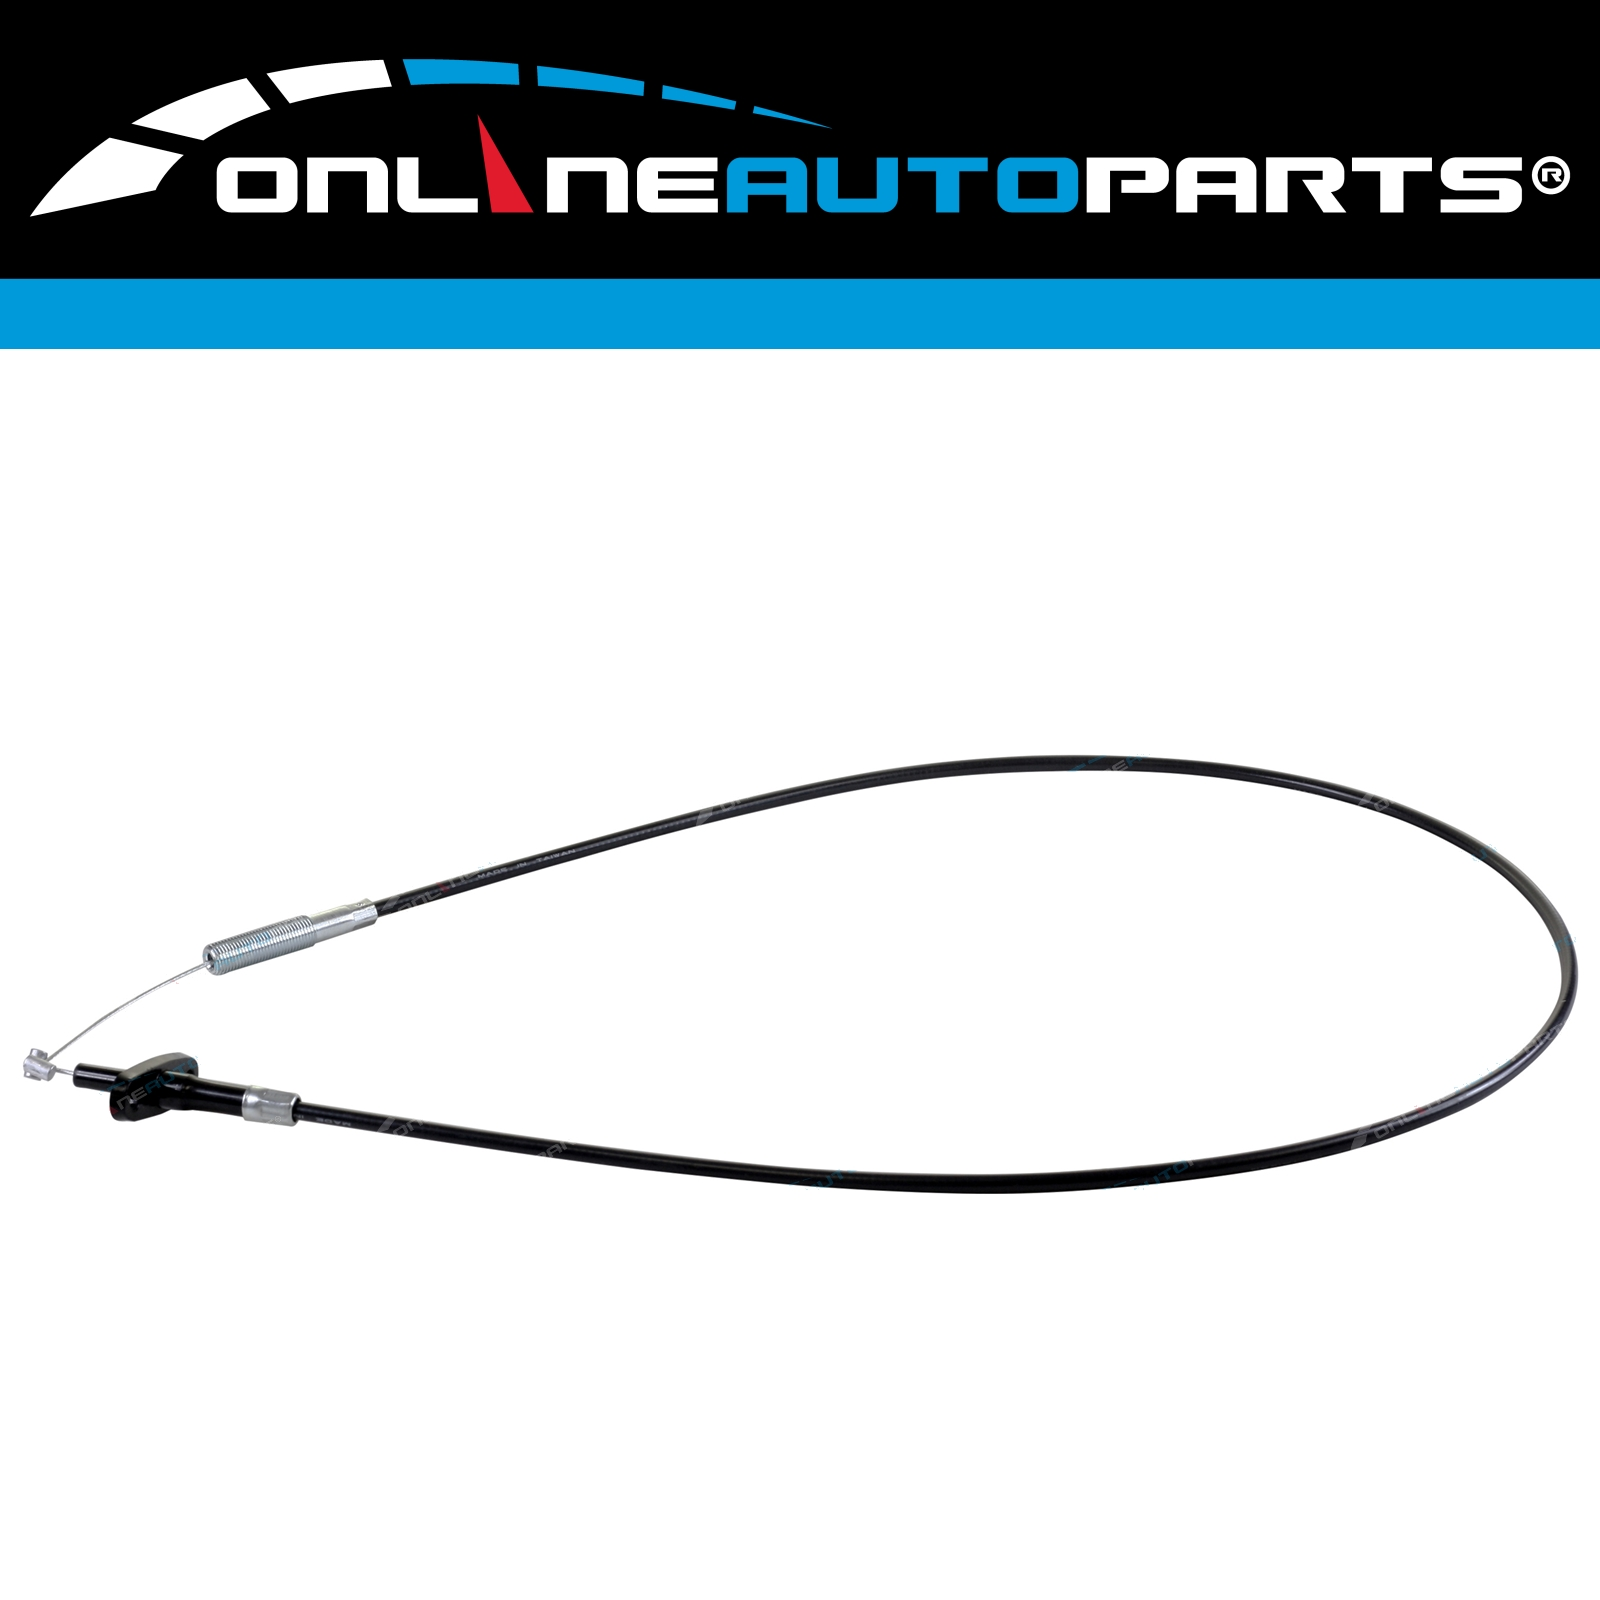 accelerator throttle cable suits landcruiser fj40 fj45 9